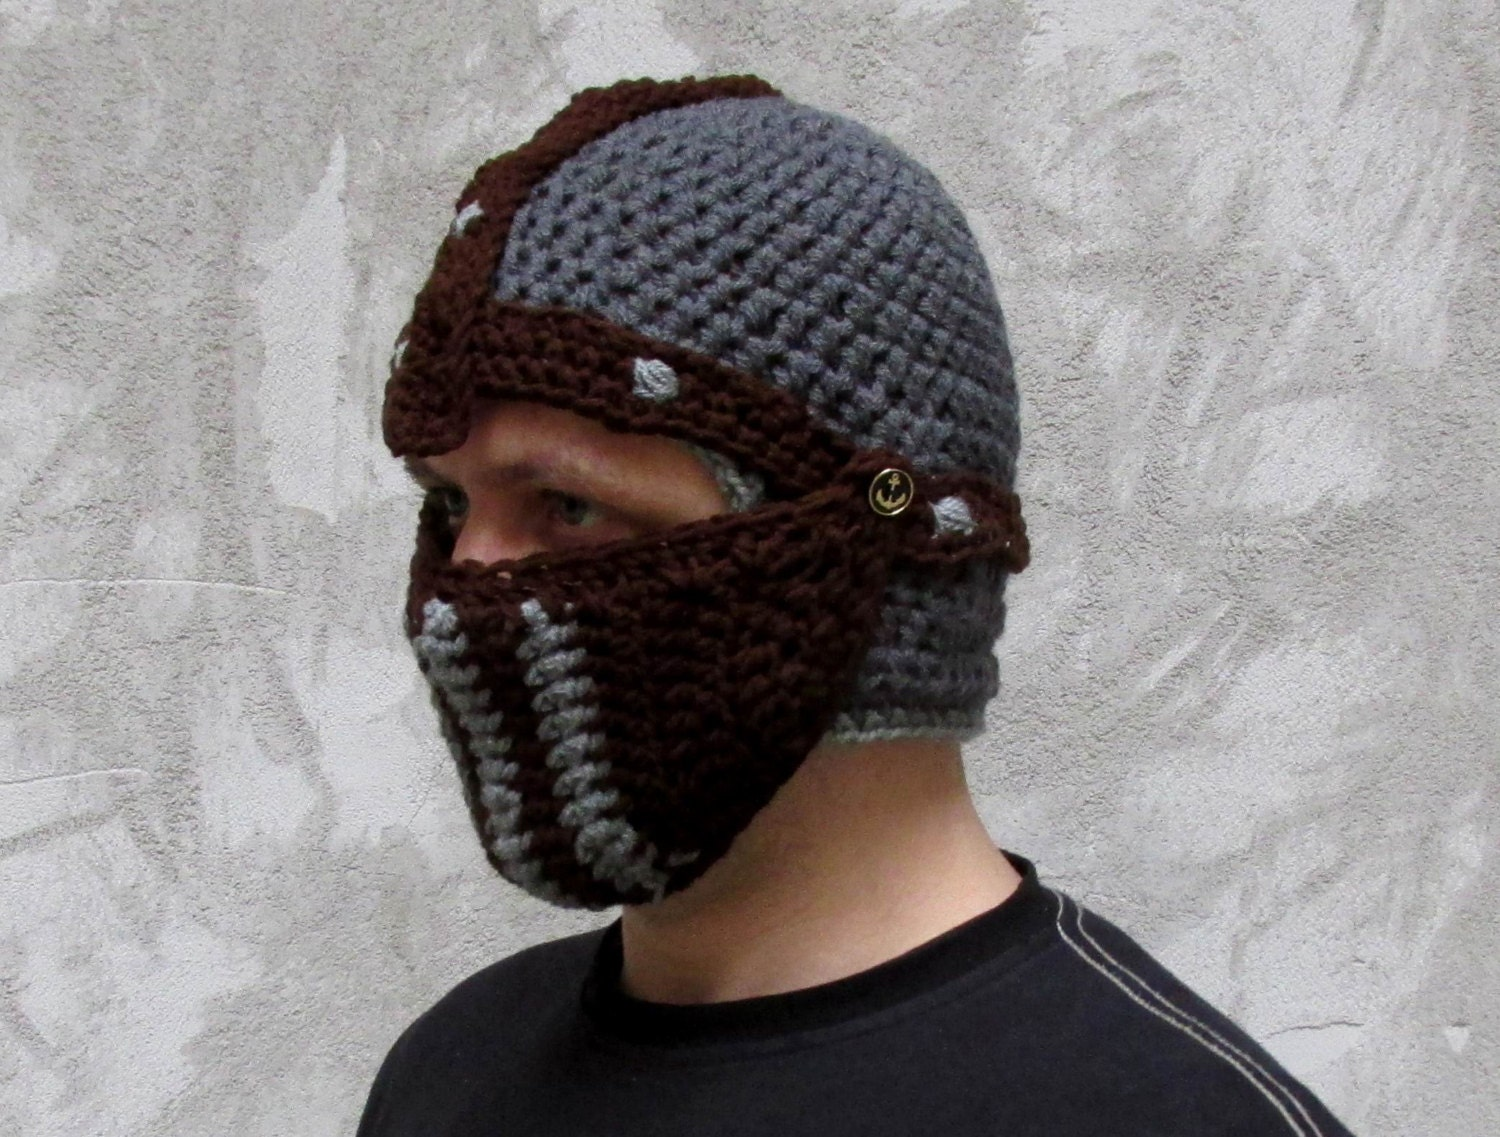 Winter hat Crochet knight helmet crusader hat by paintcrochet